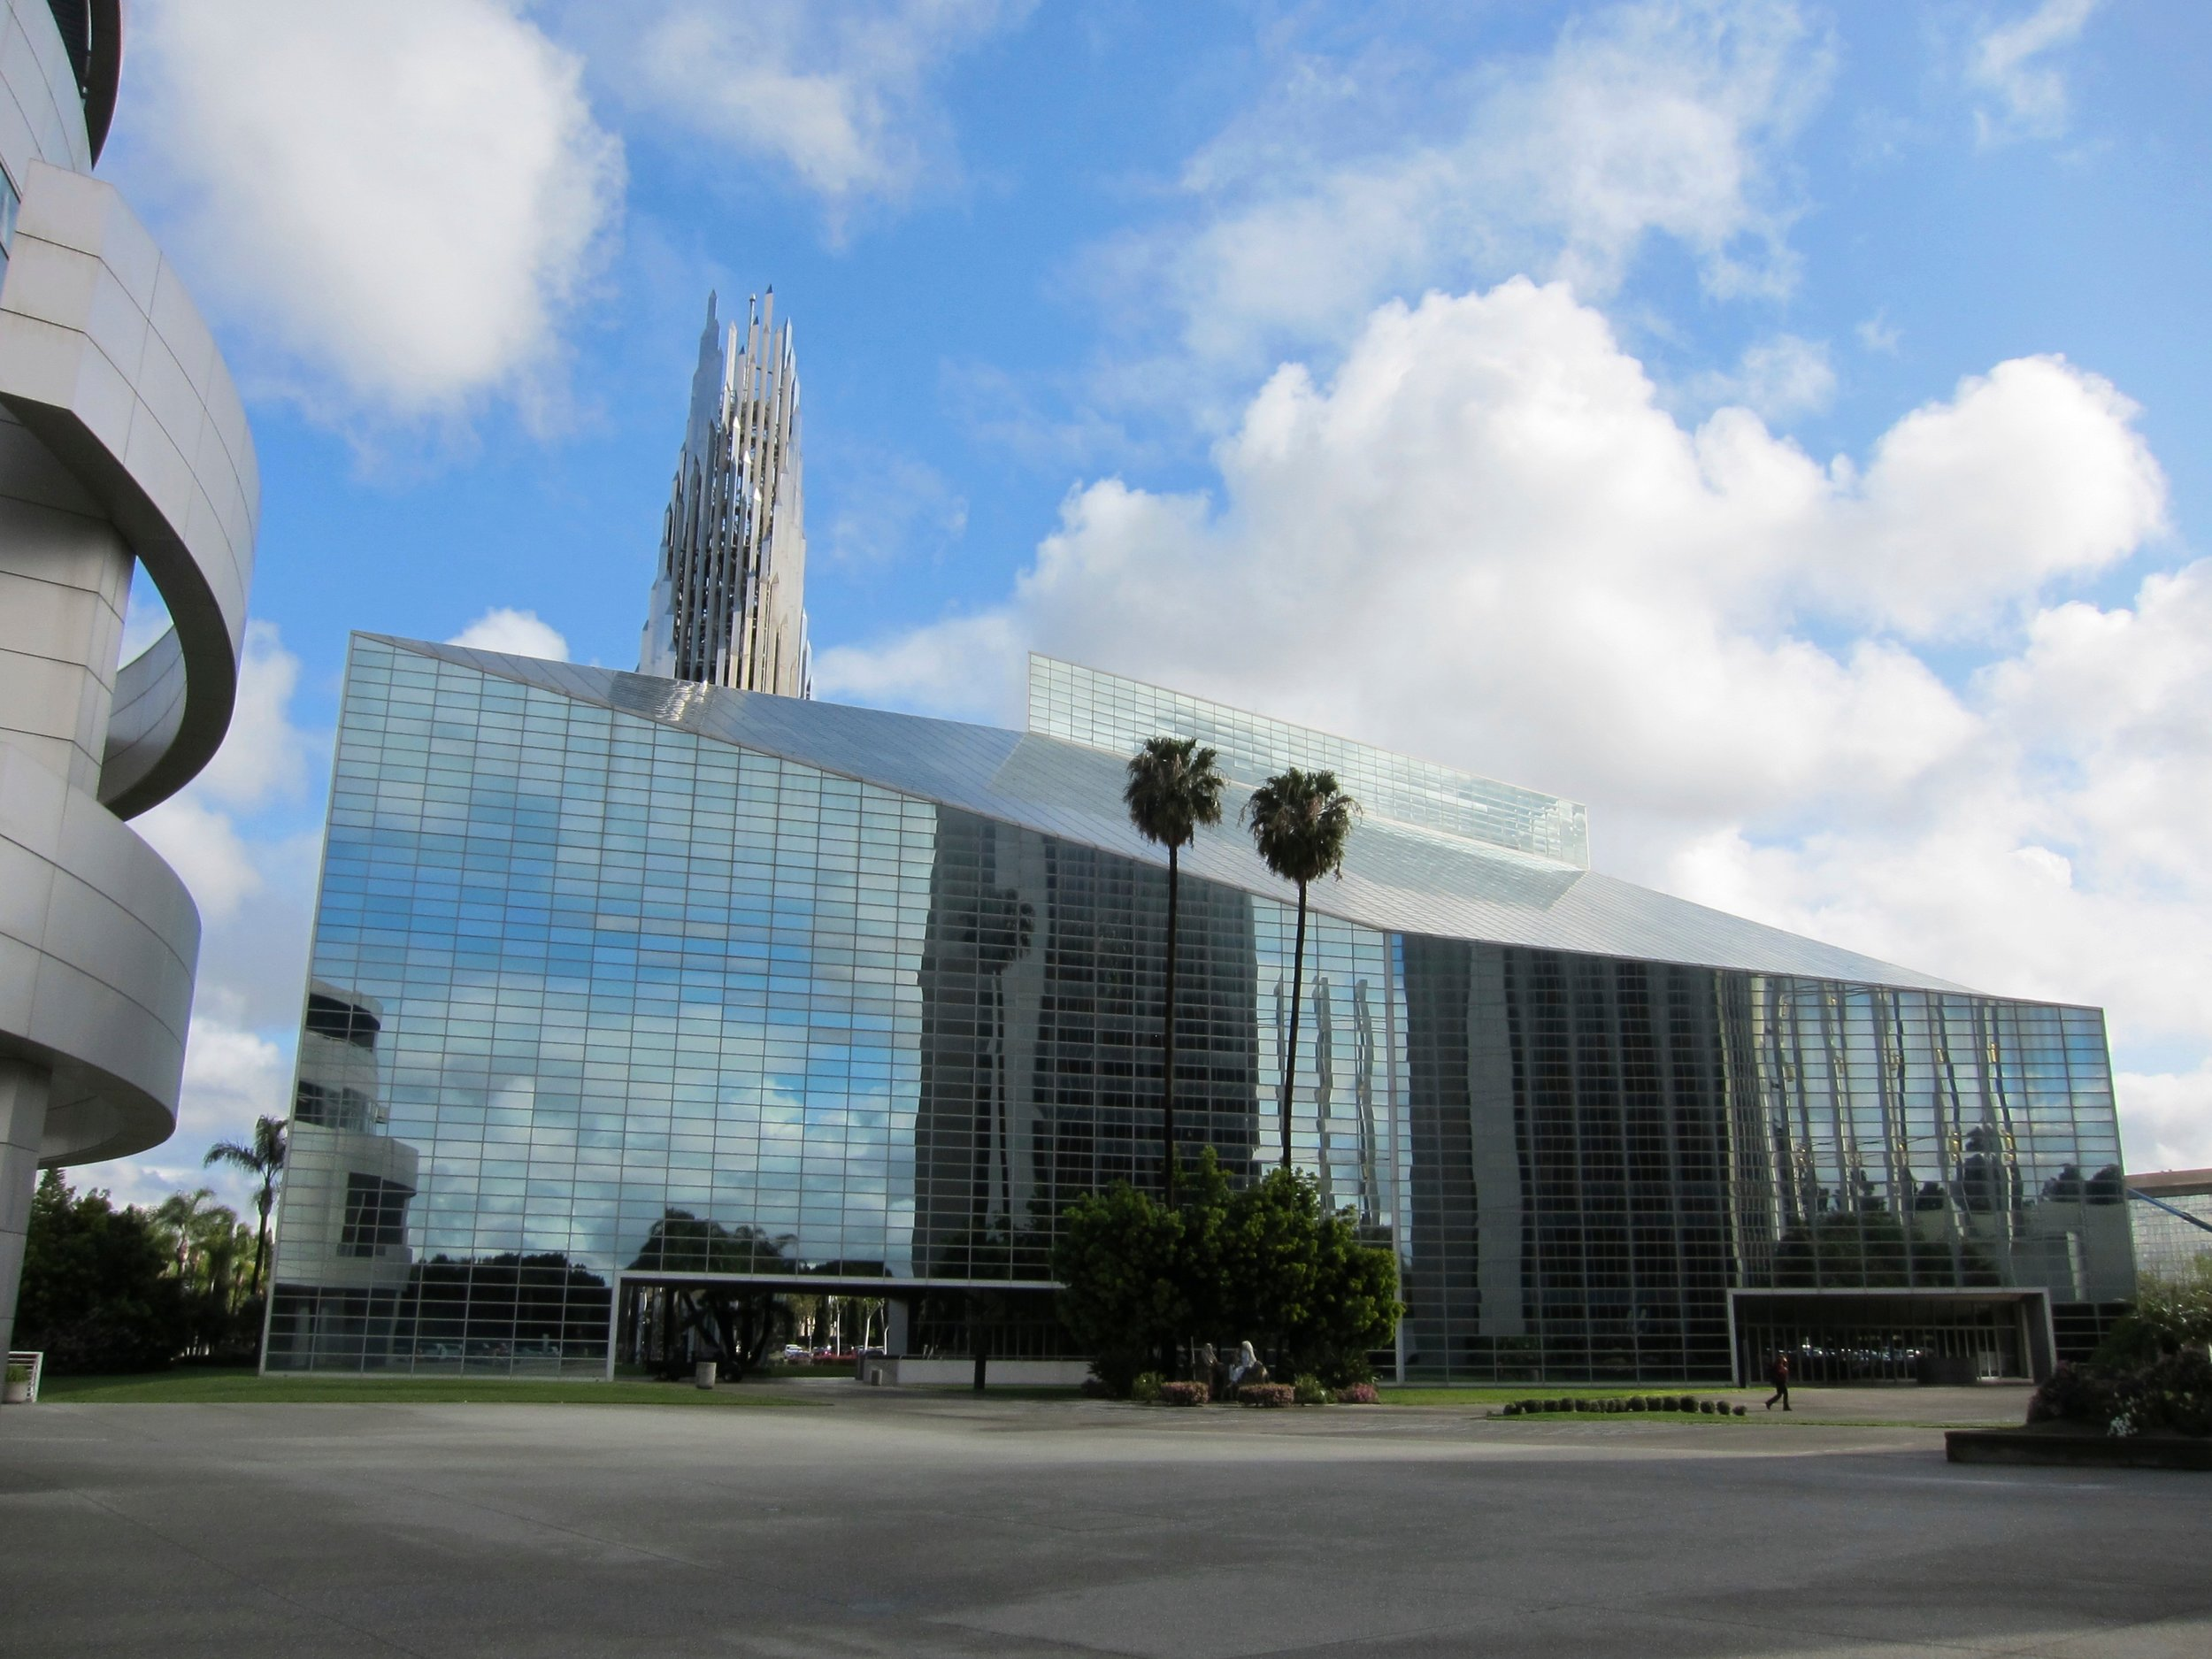 Image 1 - Exterior of Christ Cathedral.jpg